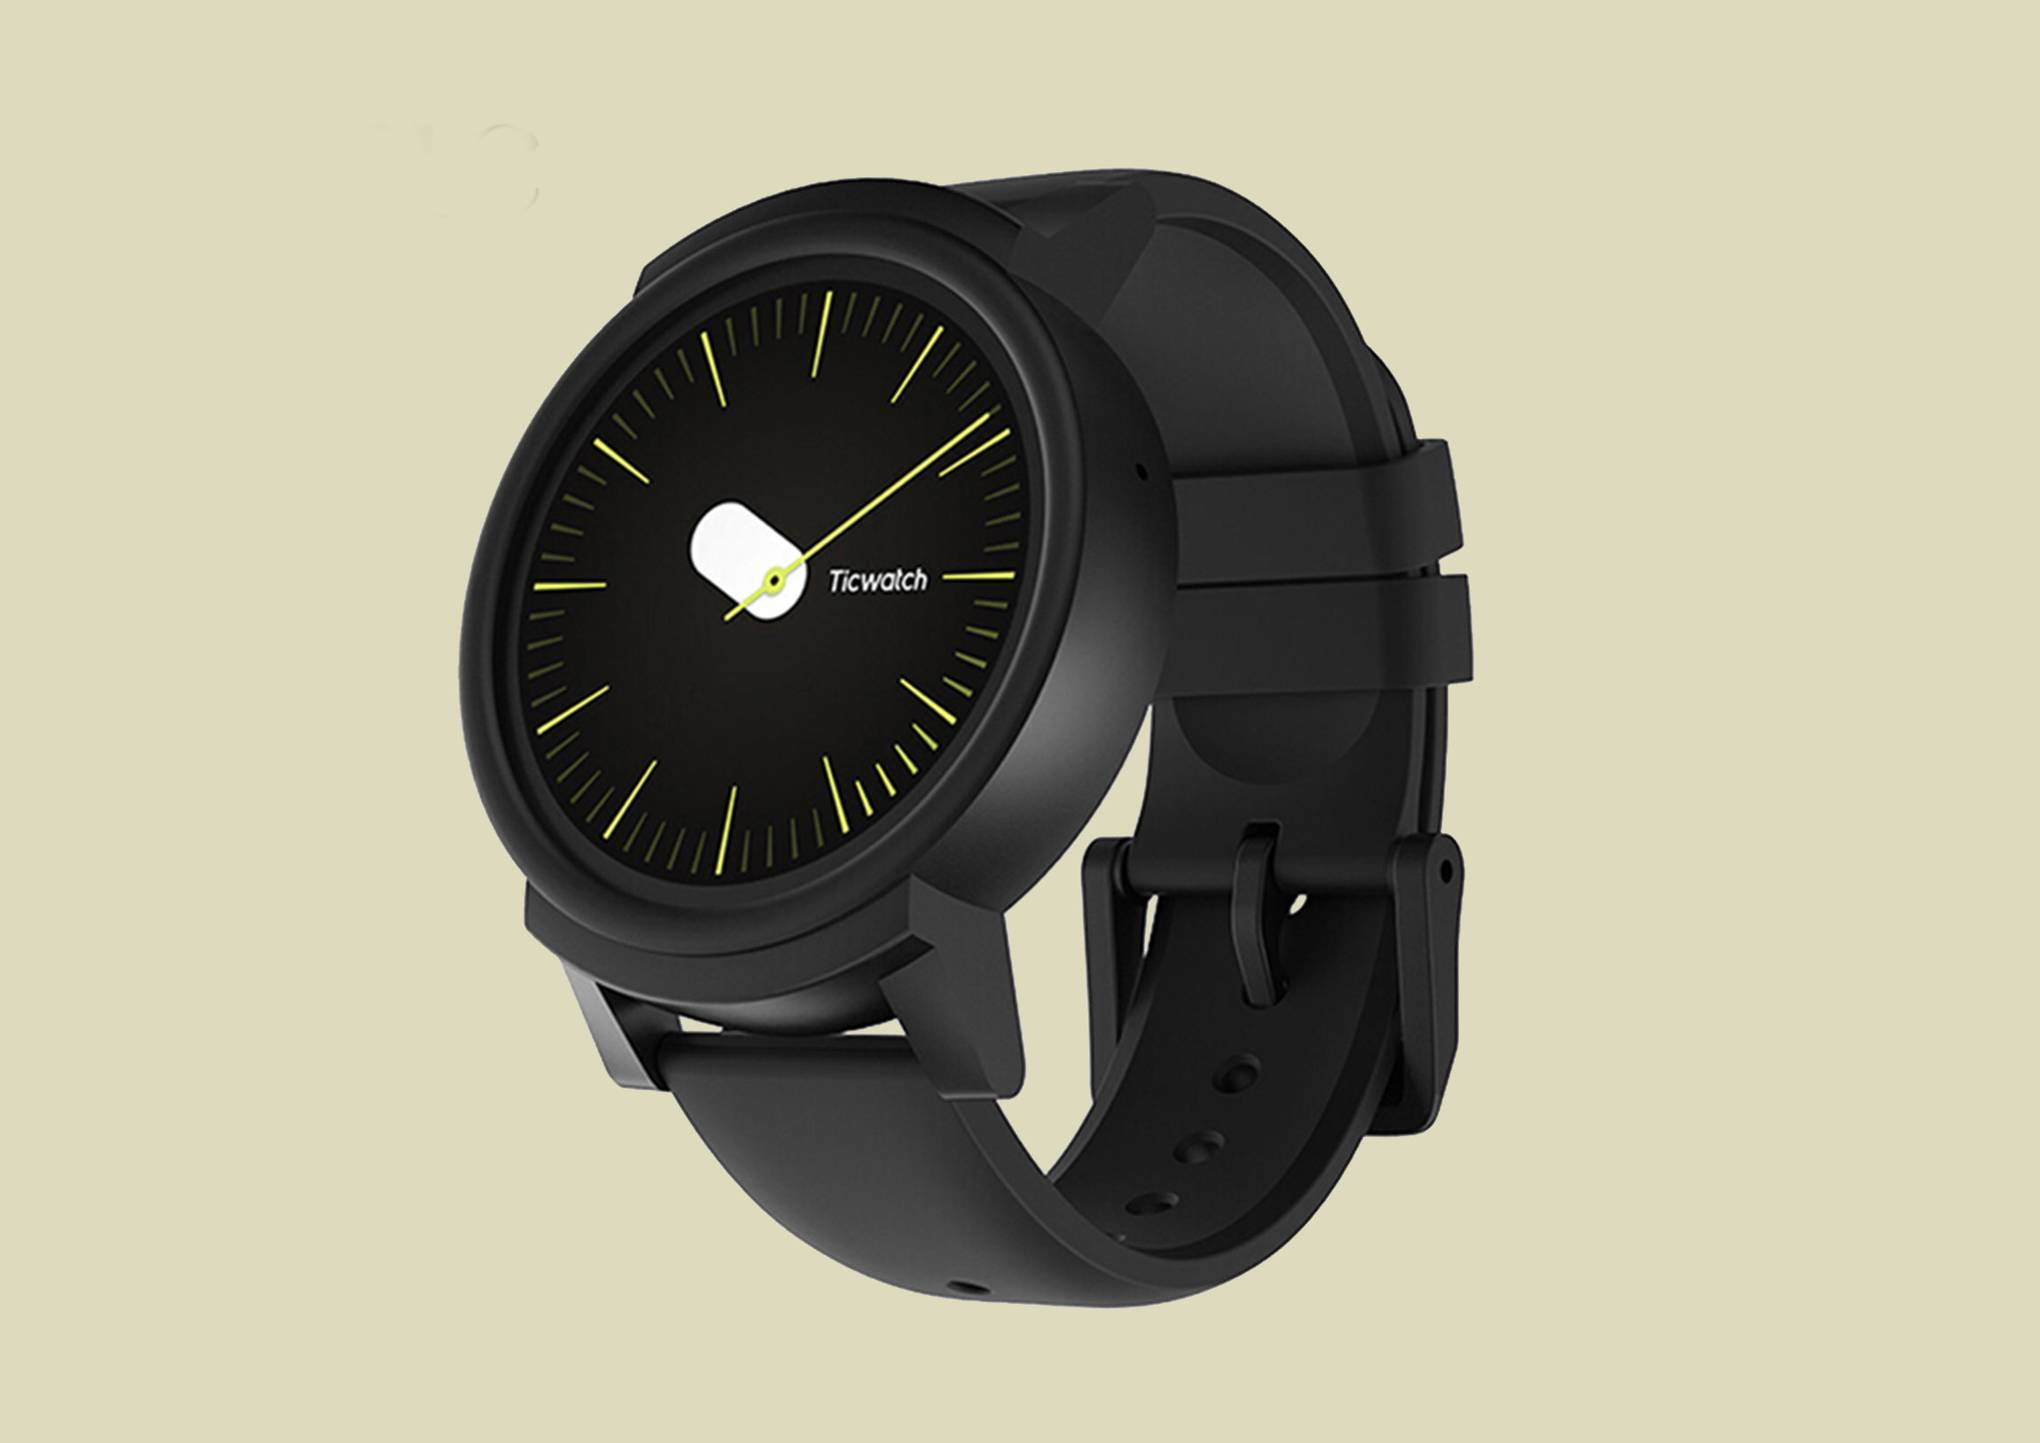 a htm i watc smartwatch best ma smart ecuberetail in sale pm watch mobile phone end plus malaysia watches